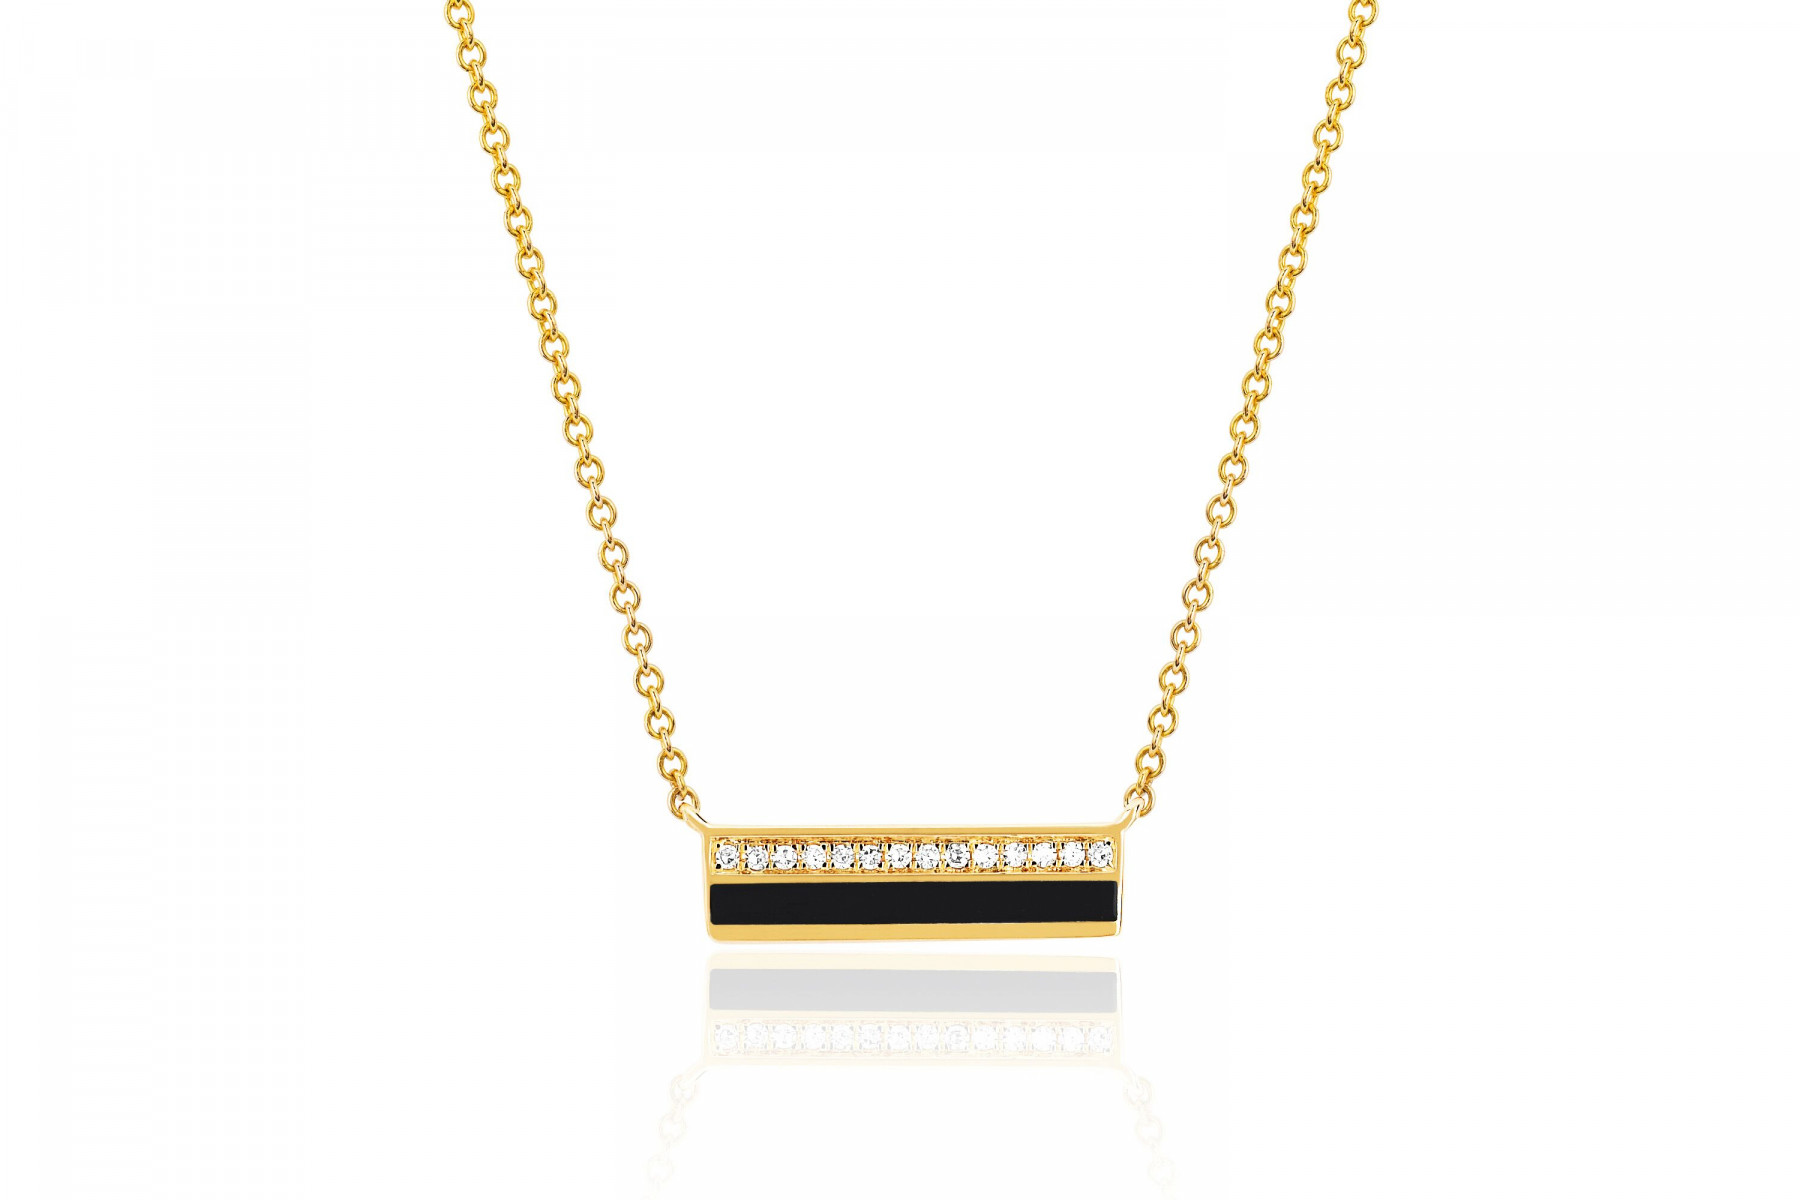 EF Collection Bar Necklace in 14K Yellow Gold